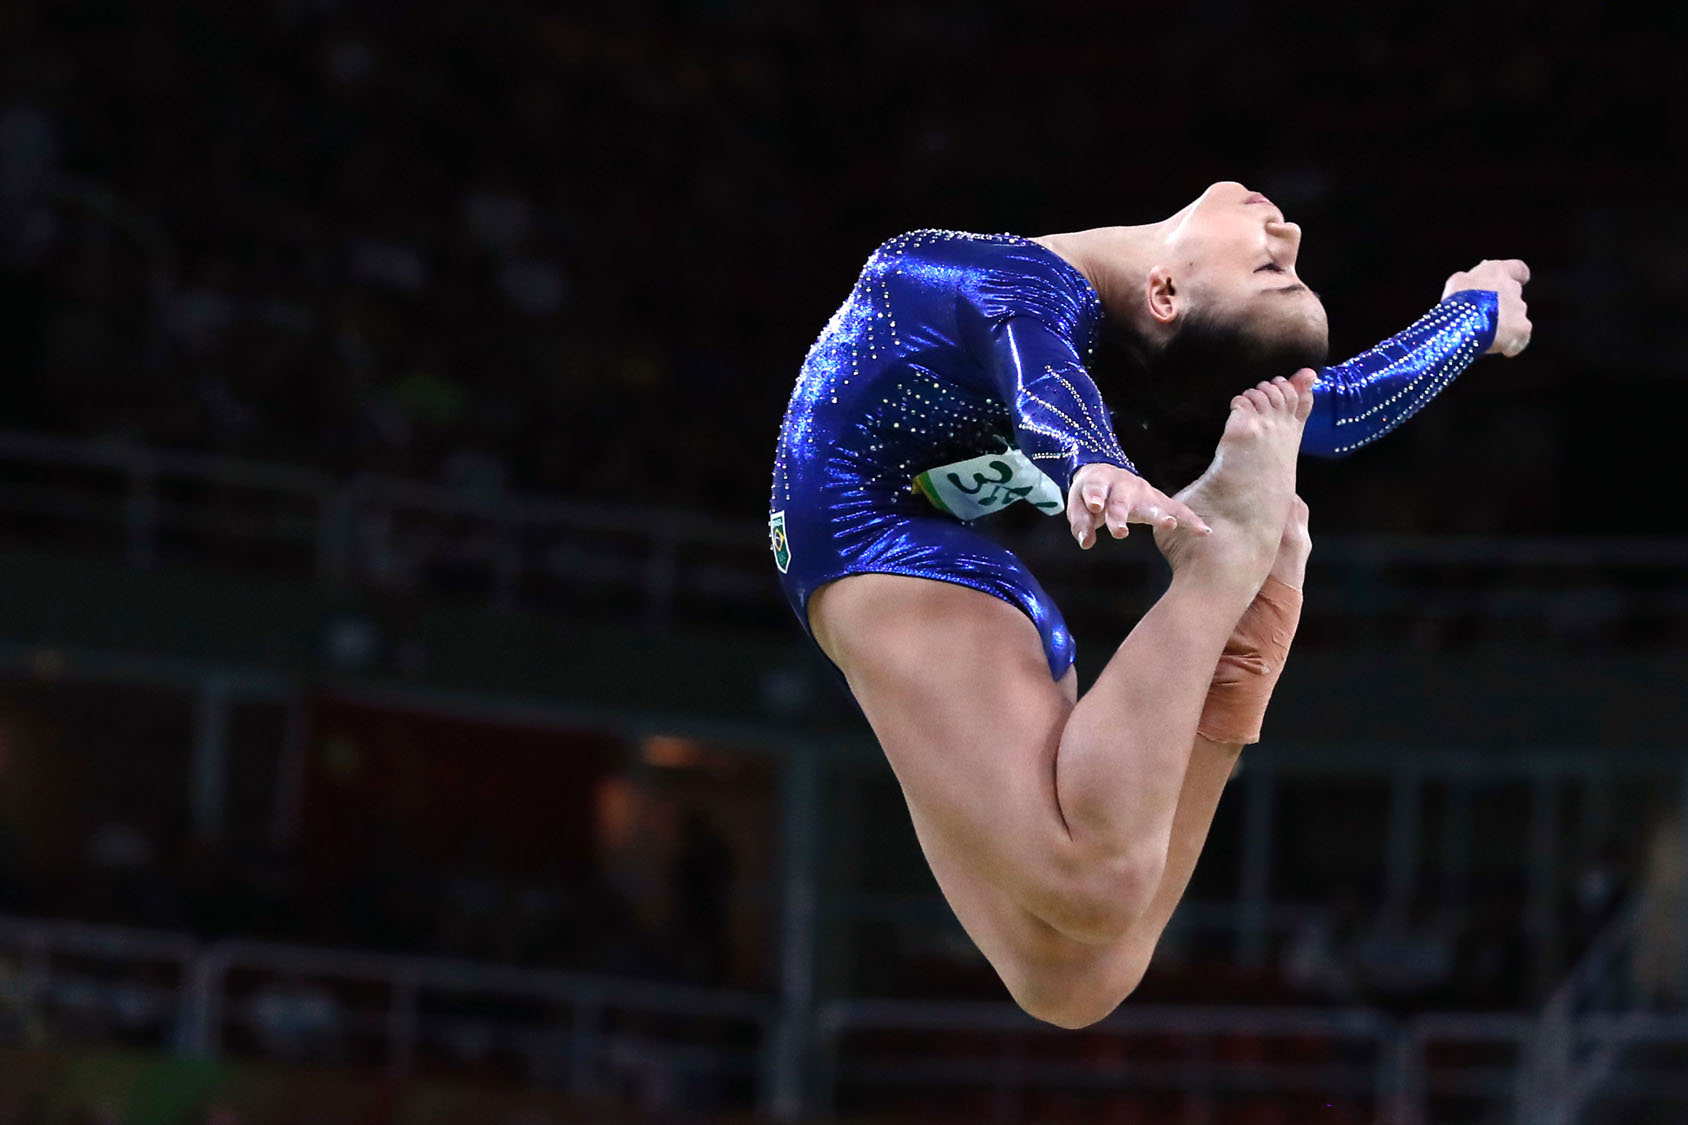 Artistic gymnastics women's team final at Rio 2016 Olympics